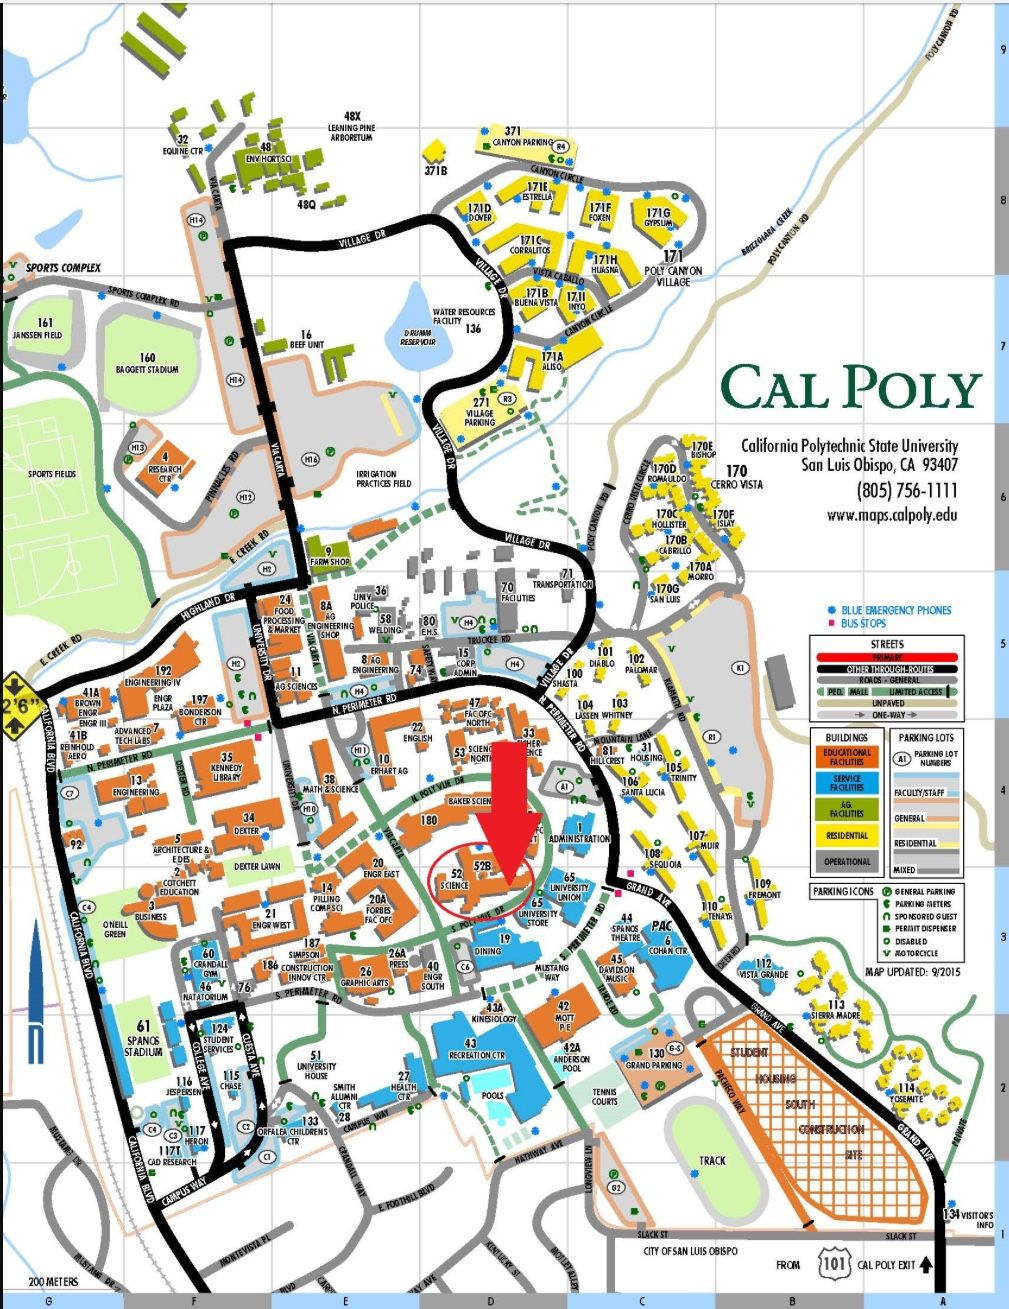 Cal Poly Slo Campus Map Pin by Shannon Schulman on Cal Poly SLO | California polytechnic